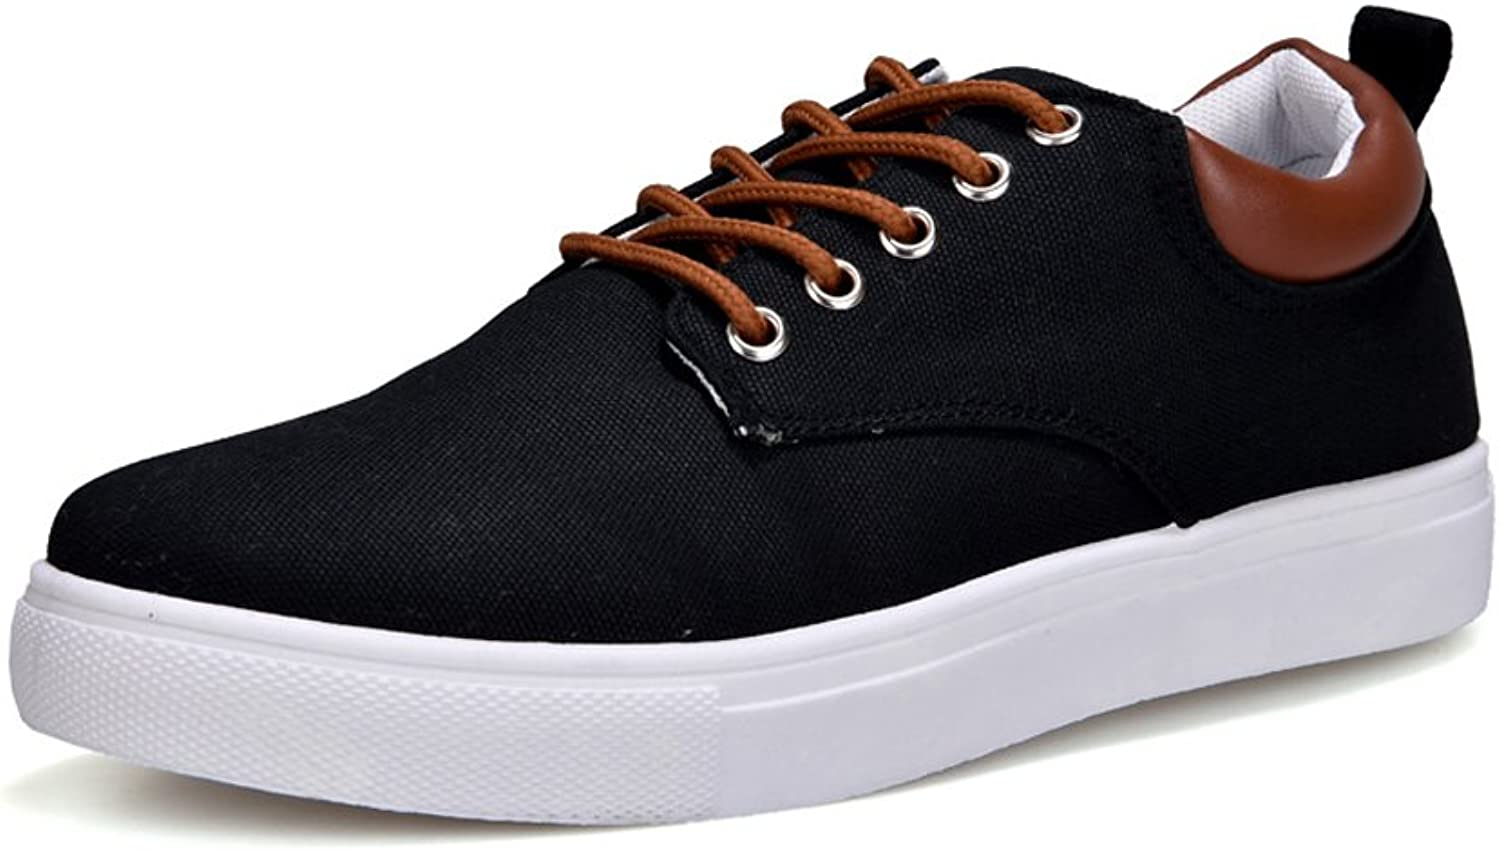 MUMUWU Men's Canvas Fashion Sneakers Low Top Lace Up Casual Wear Carrier